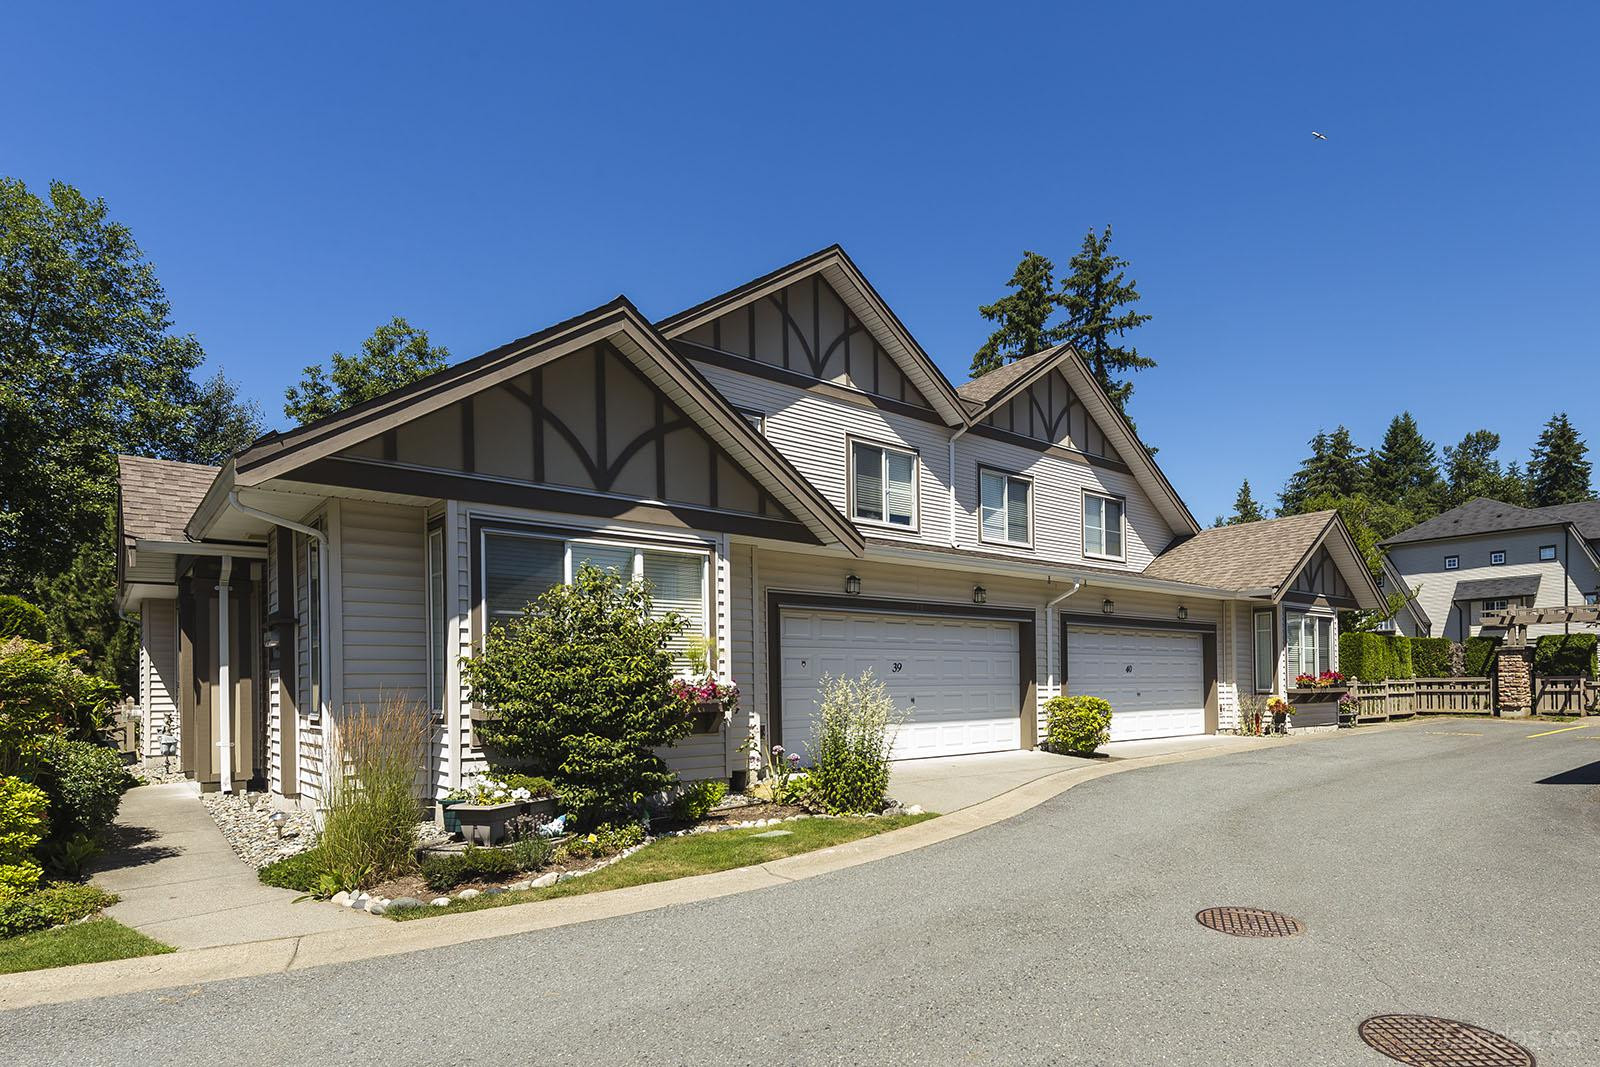 Chestnut Grove at 15868 85 Ave, Surrey 0